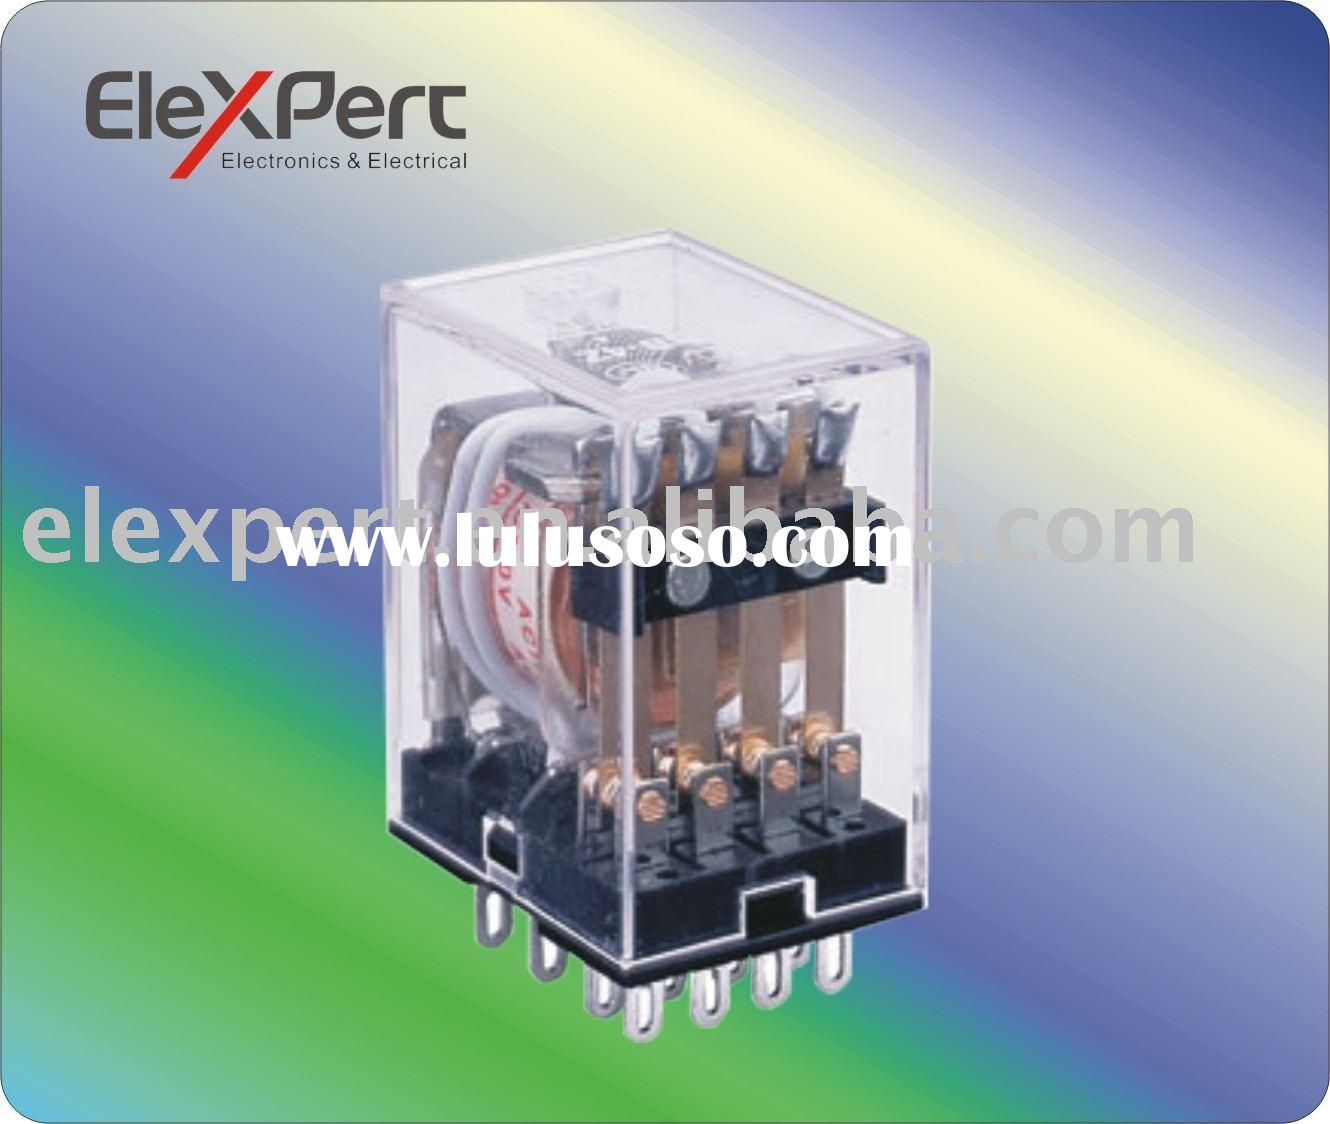 Omron Relay My4n Wiring Diagram  Omron Relay My4n Wiring Diagram Manufacturers In Lulusoso Com